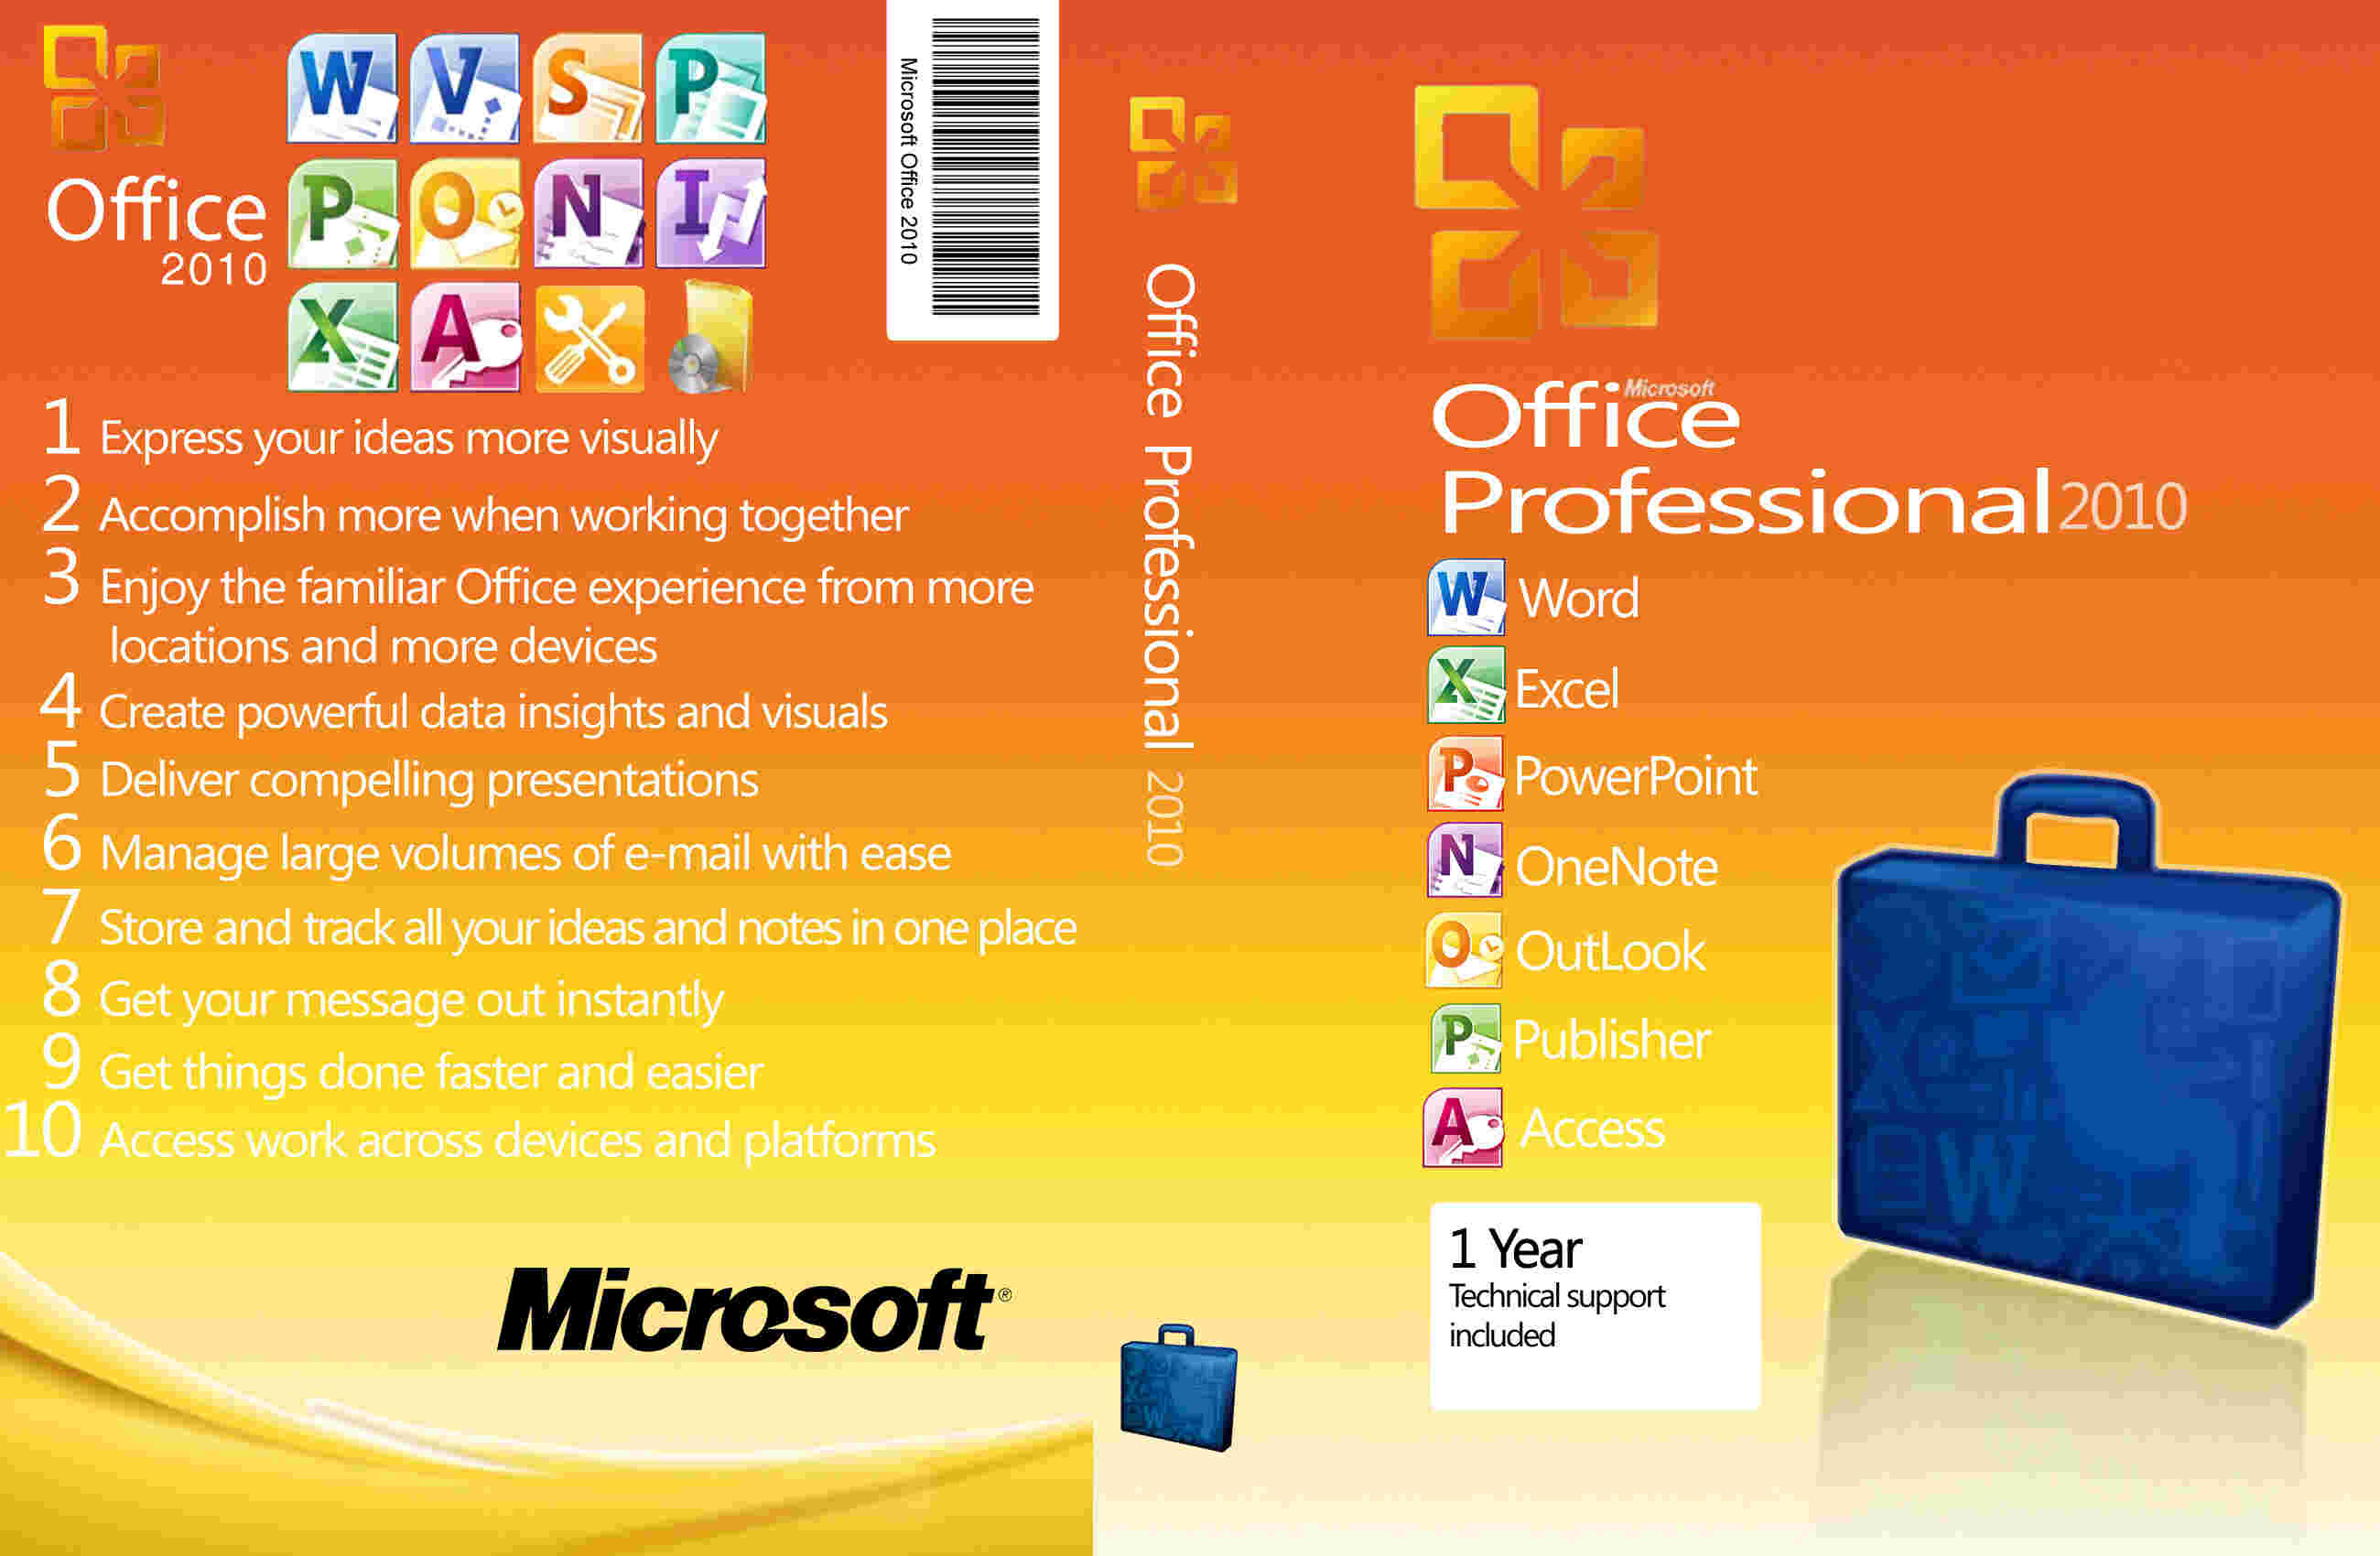 http://masterdetijuana.files.wordpress.com/2010/10/ms_office_professional_2010_r0_custom-front-www-freecovers-net.jpg